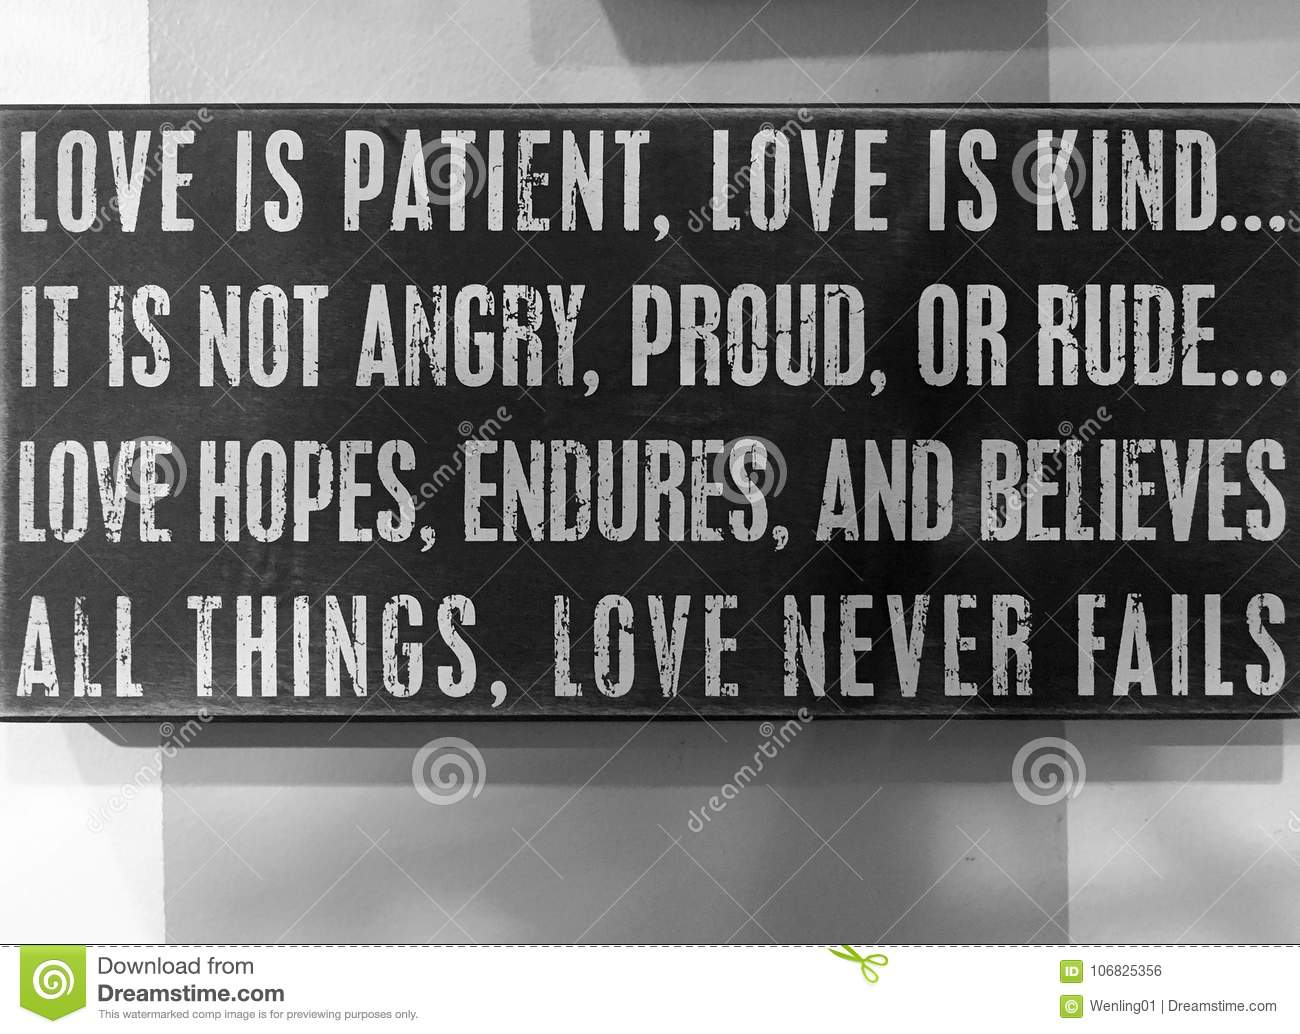 Nice tips about love in our life